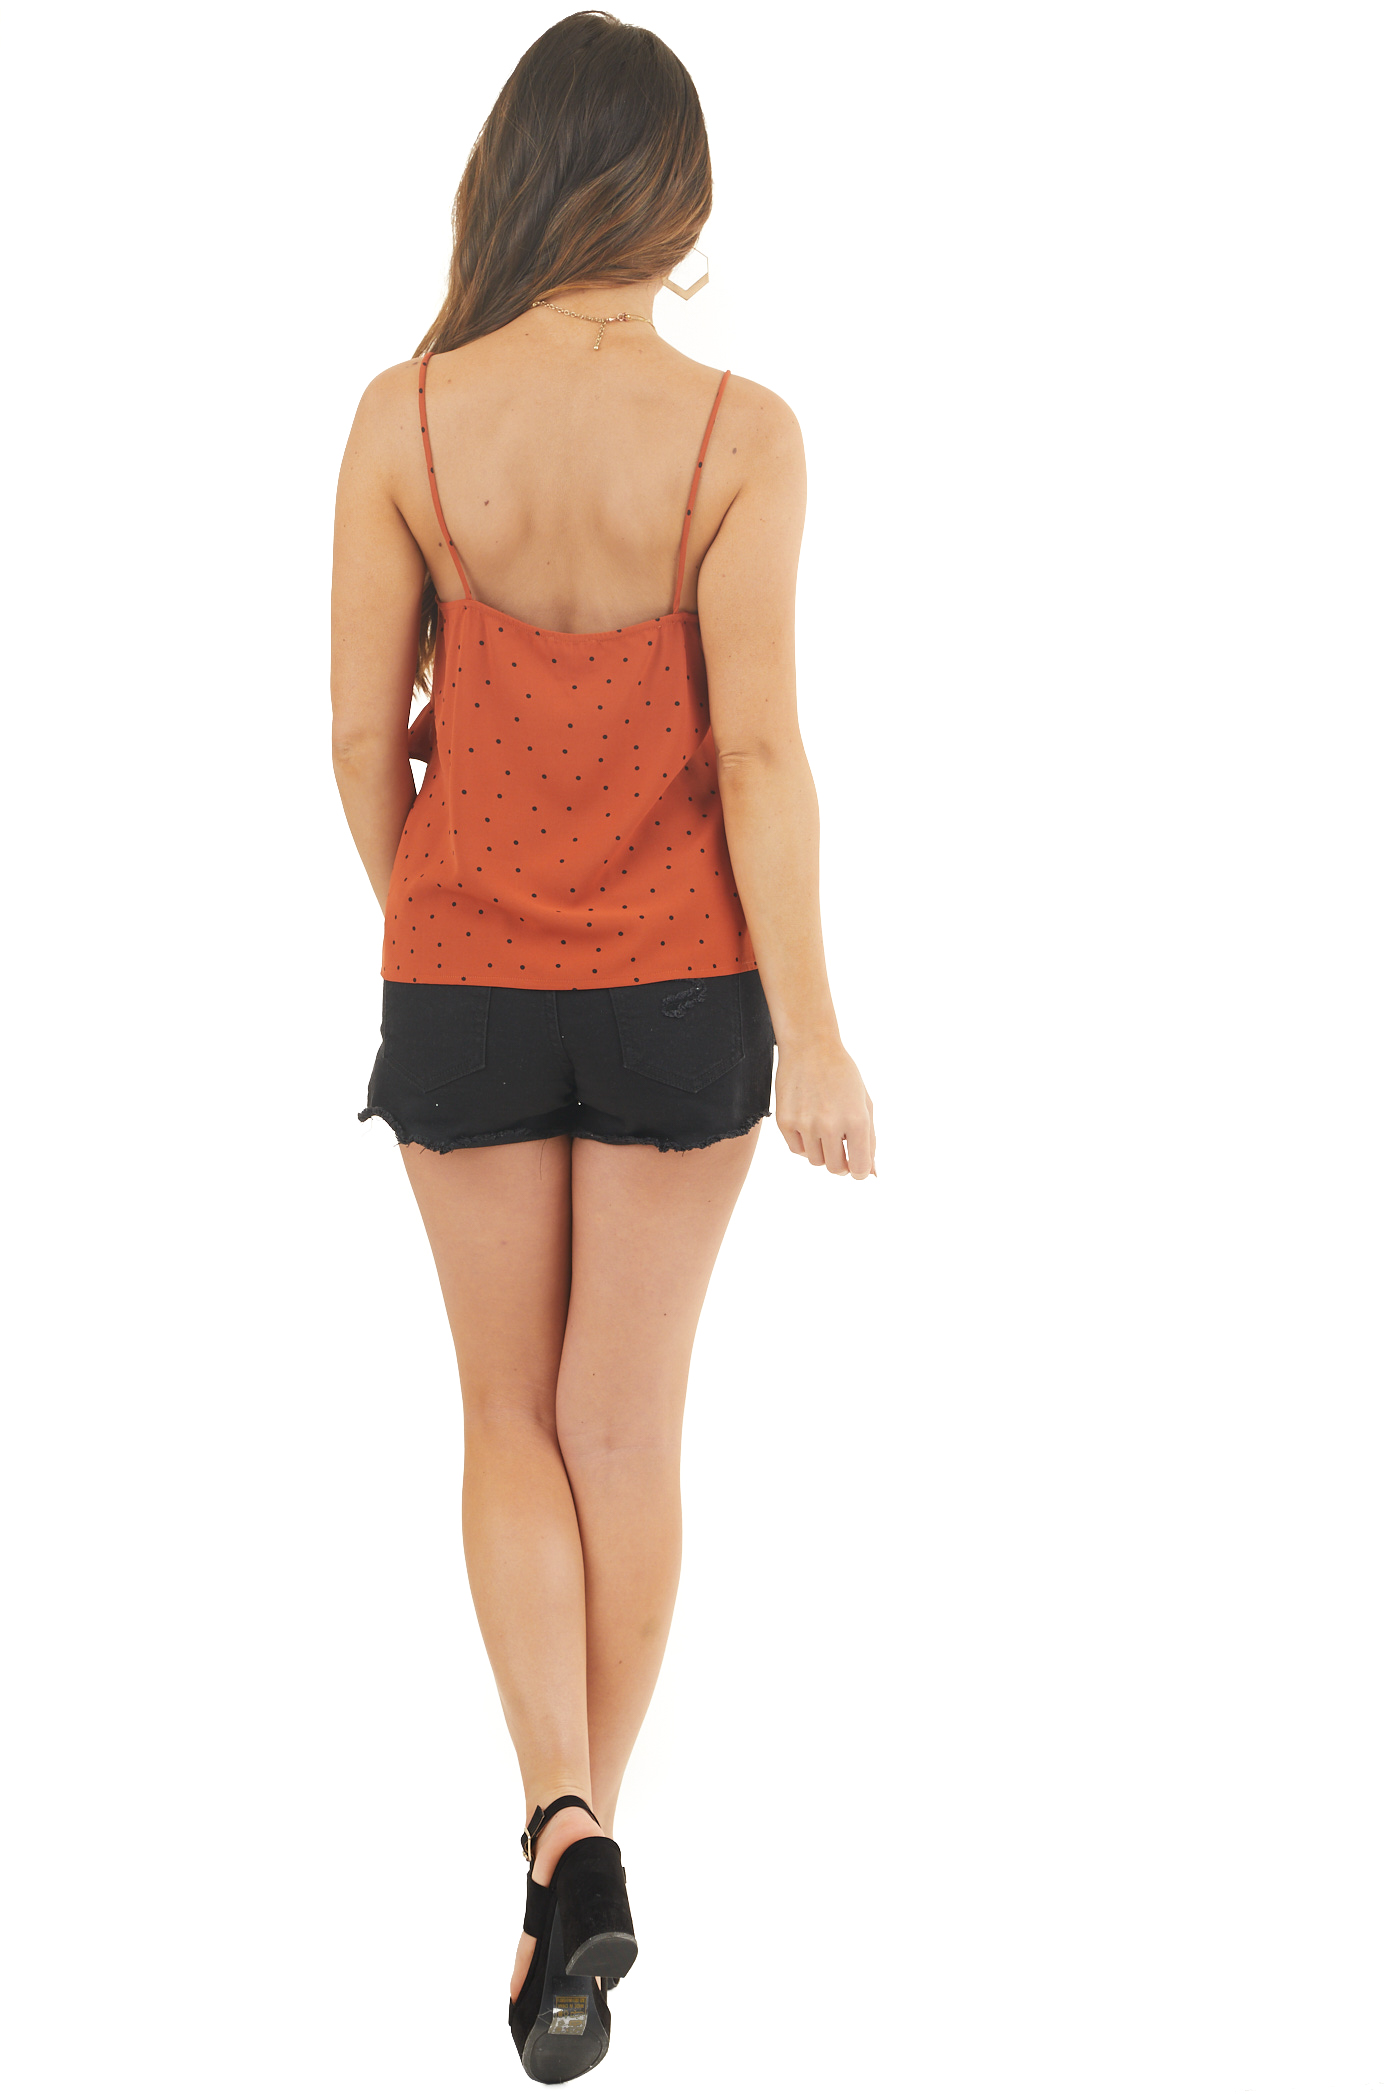 Rust and Jet Black Polka Dot Tank Top with Ruffle Details